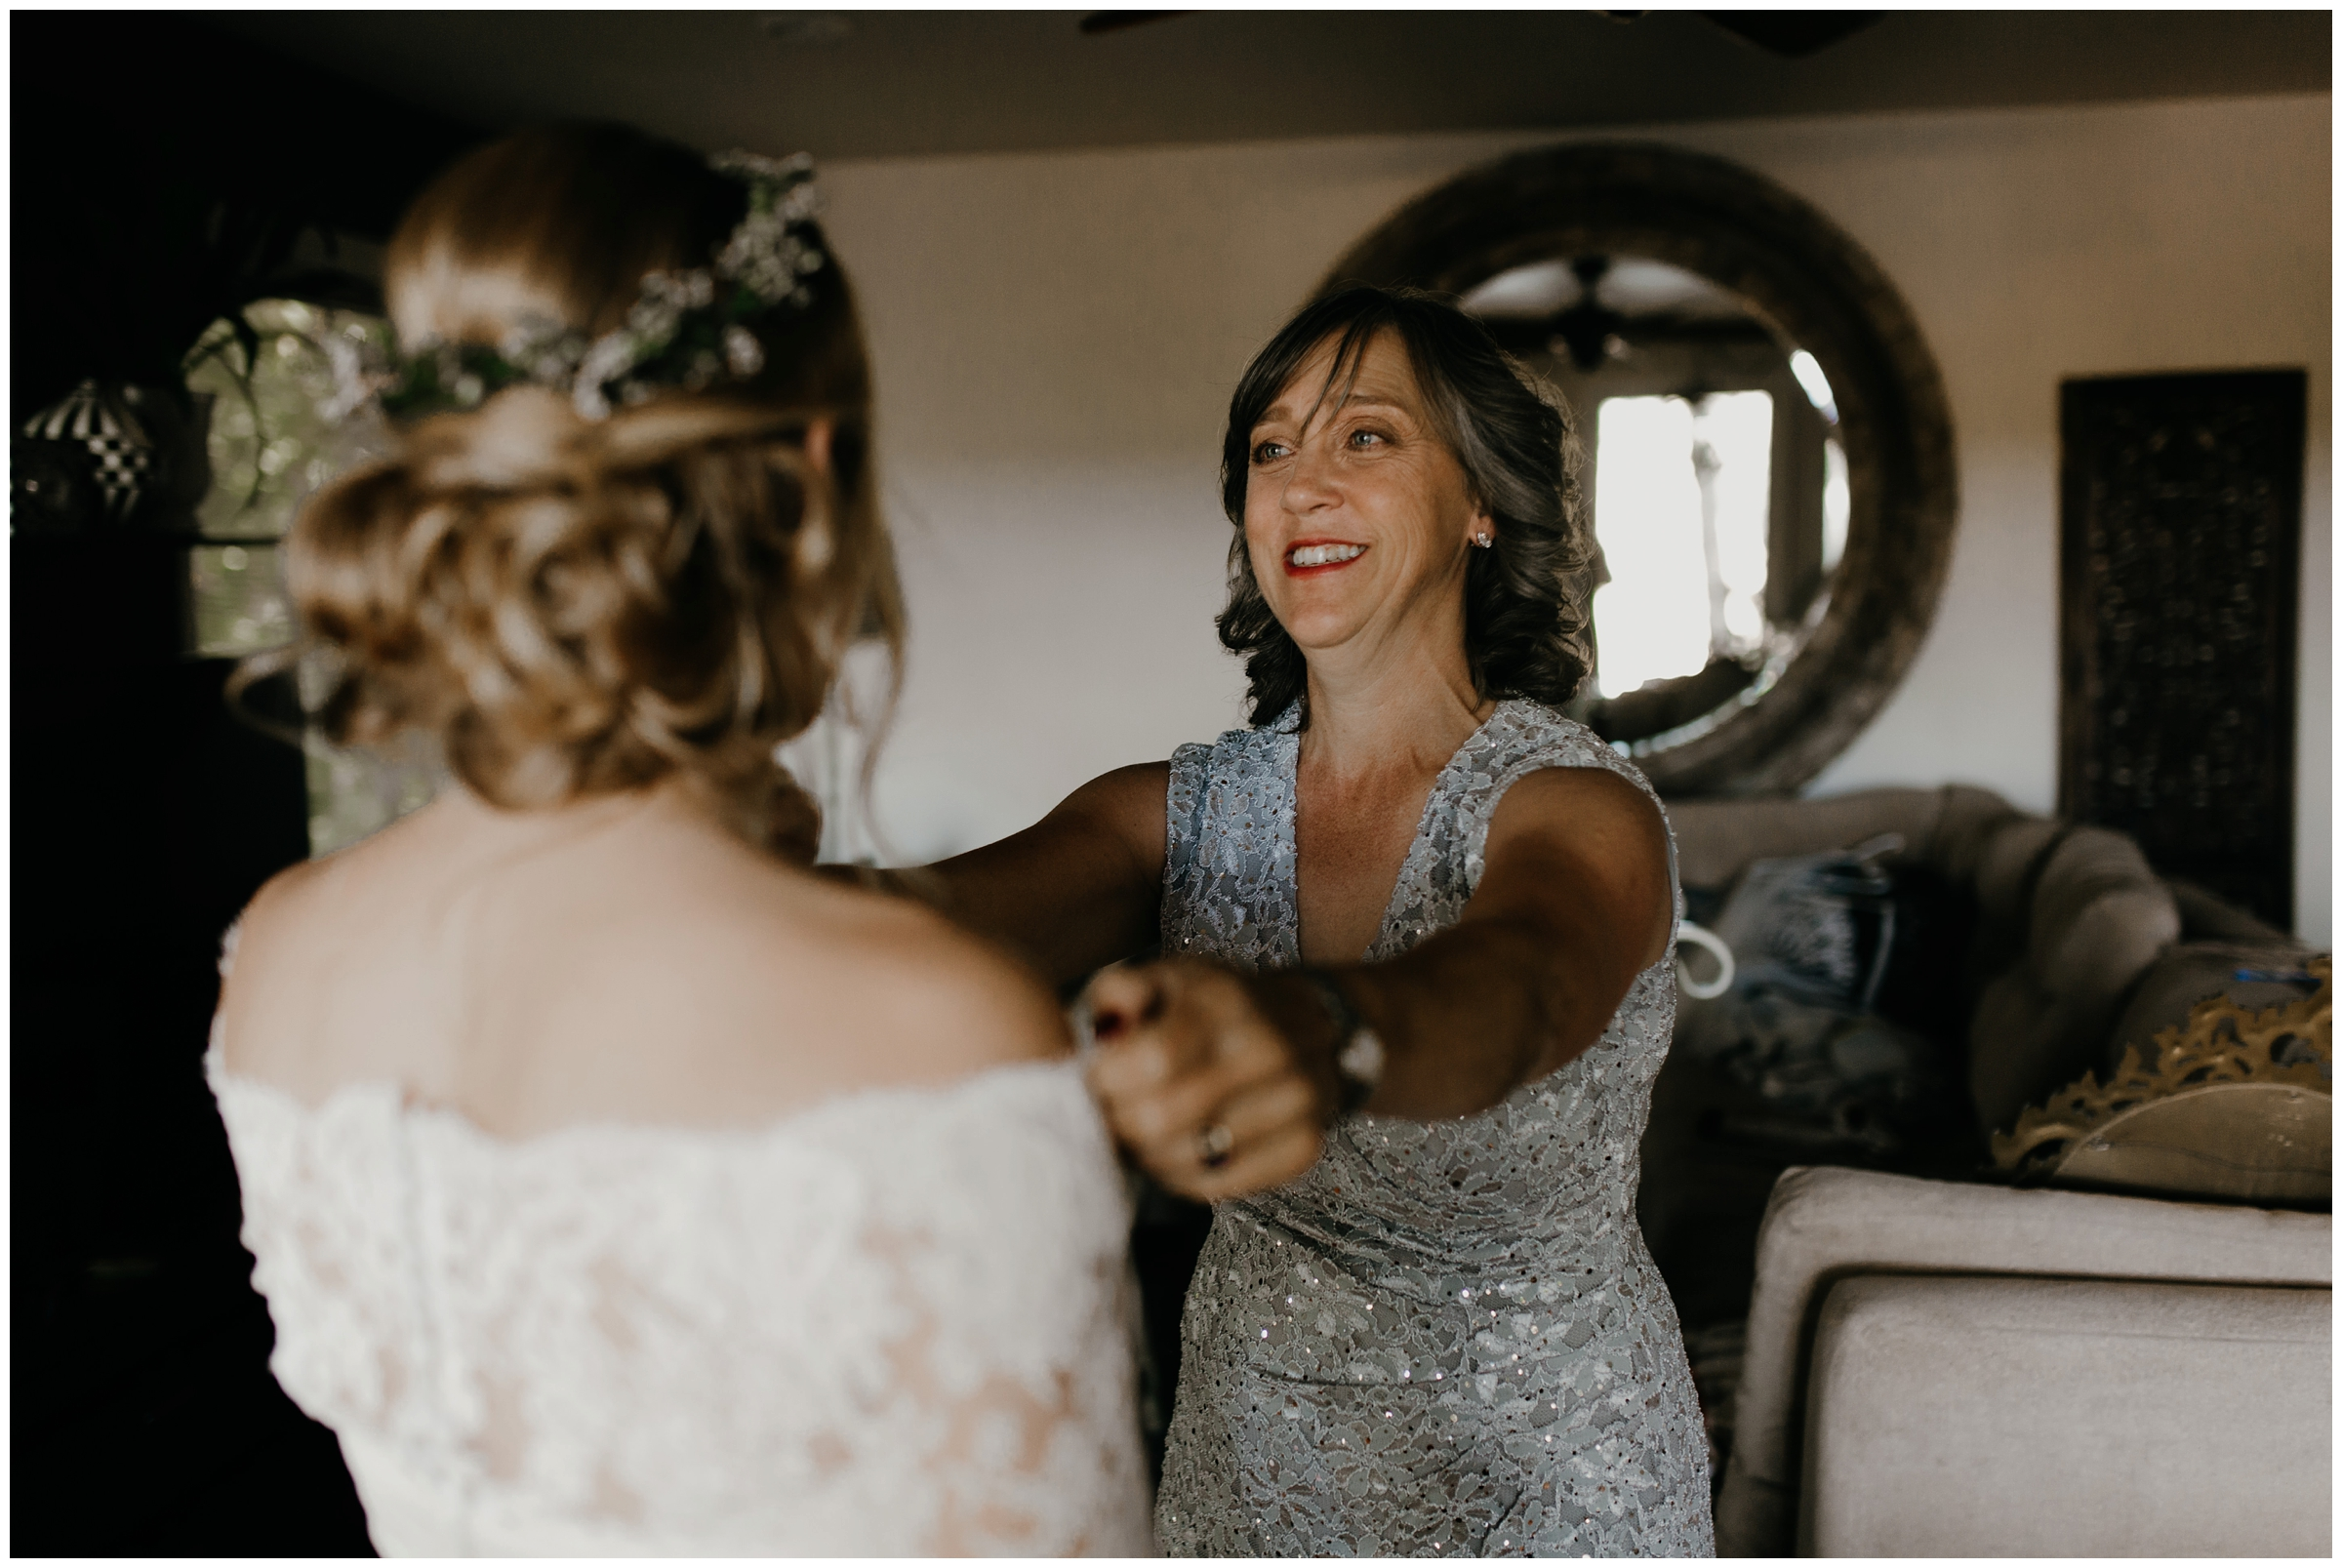 mother looking adoringly at her daughter at wedding